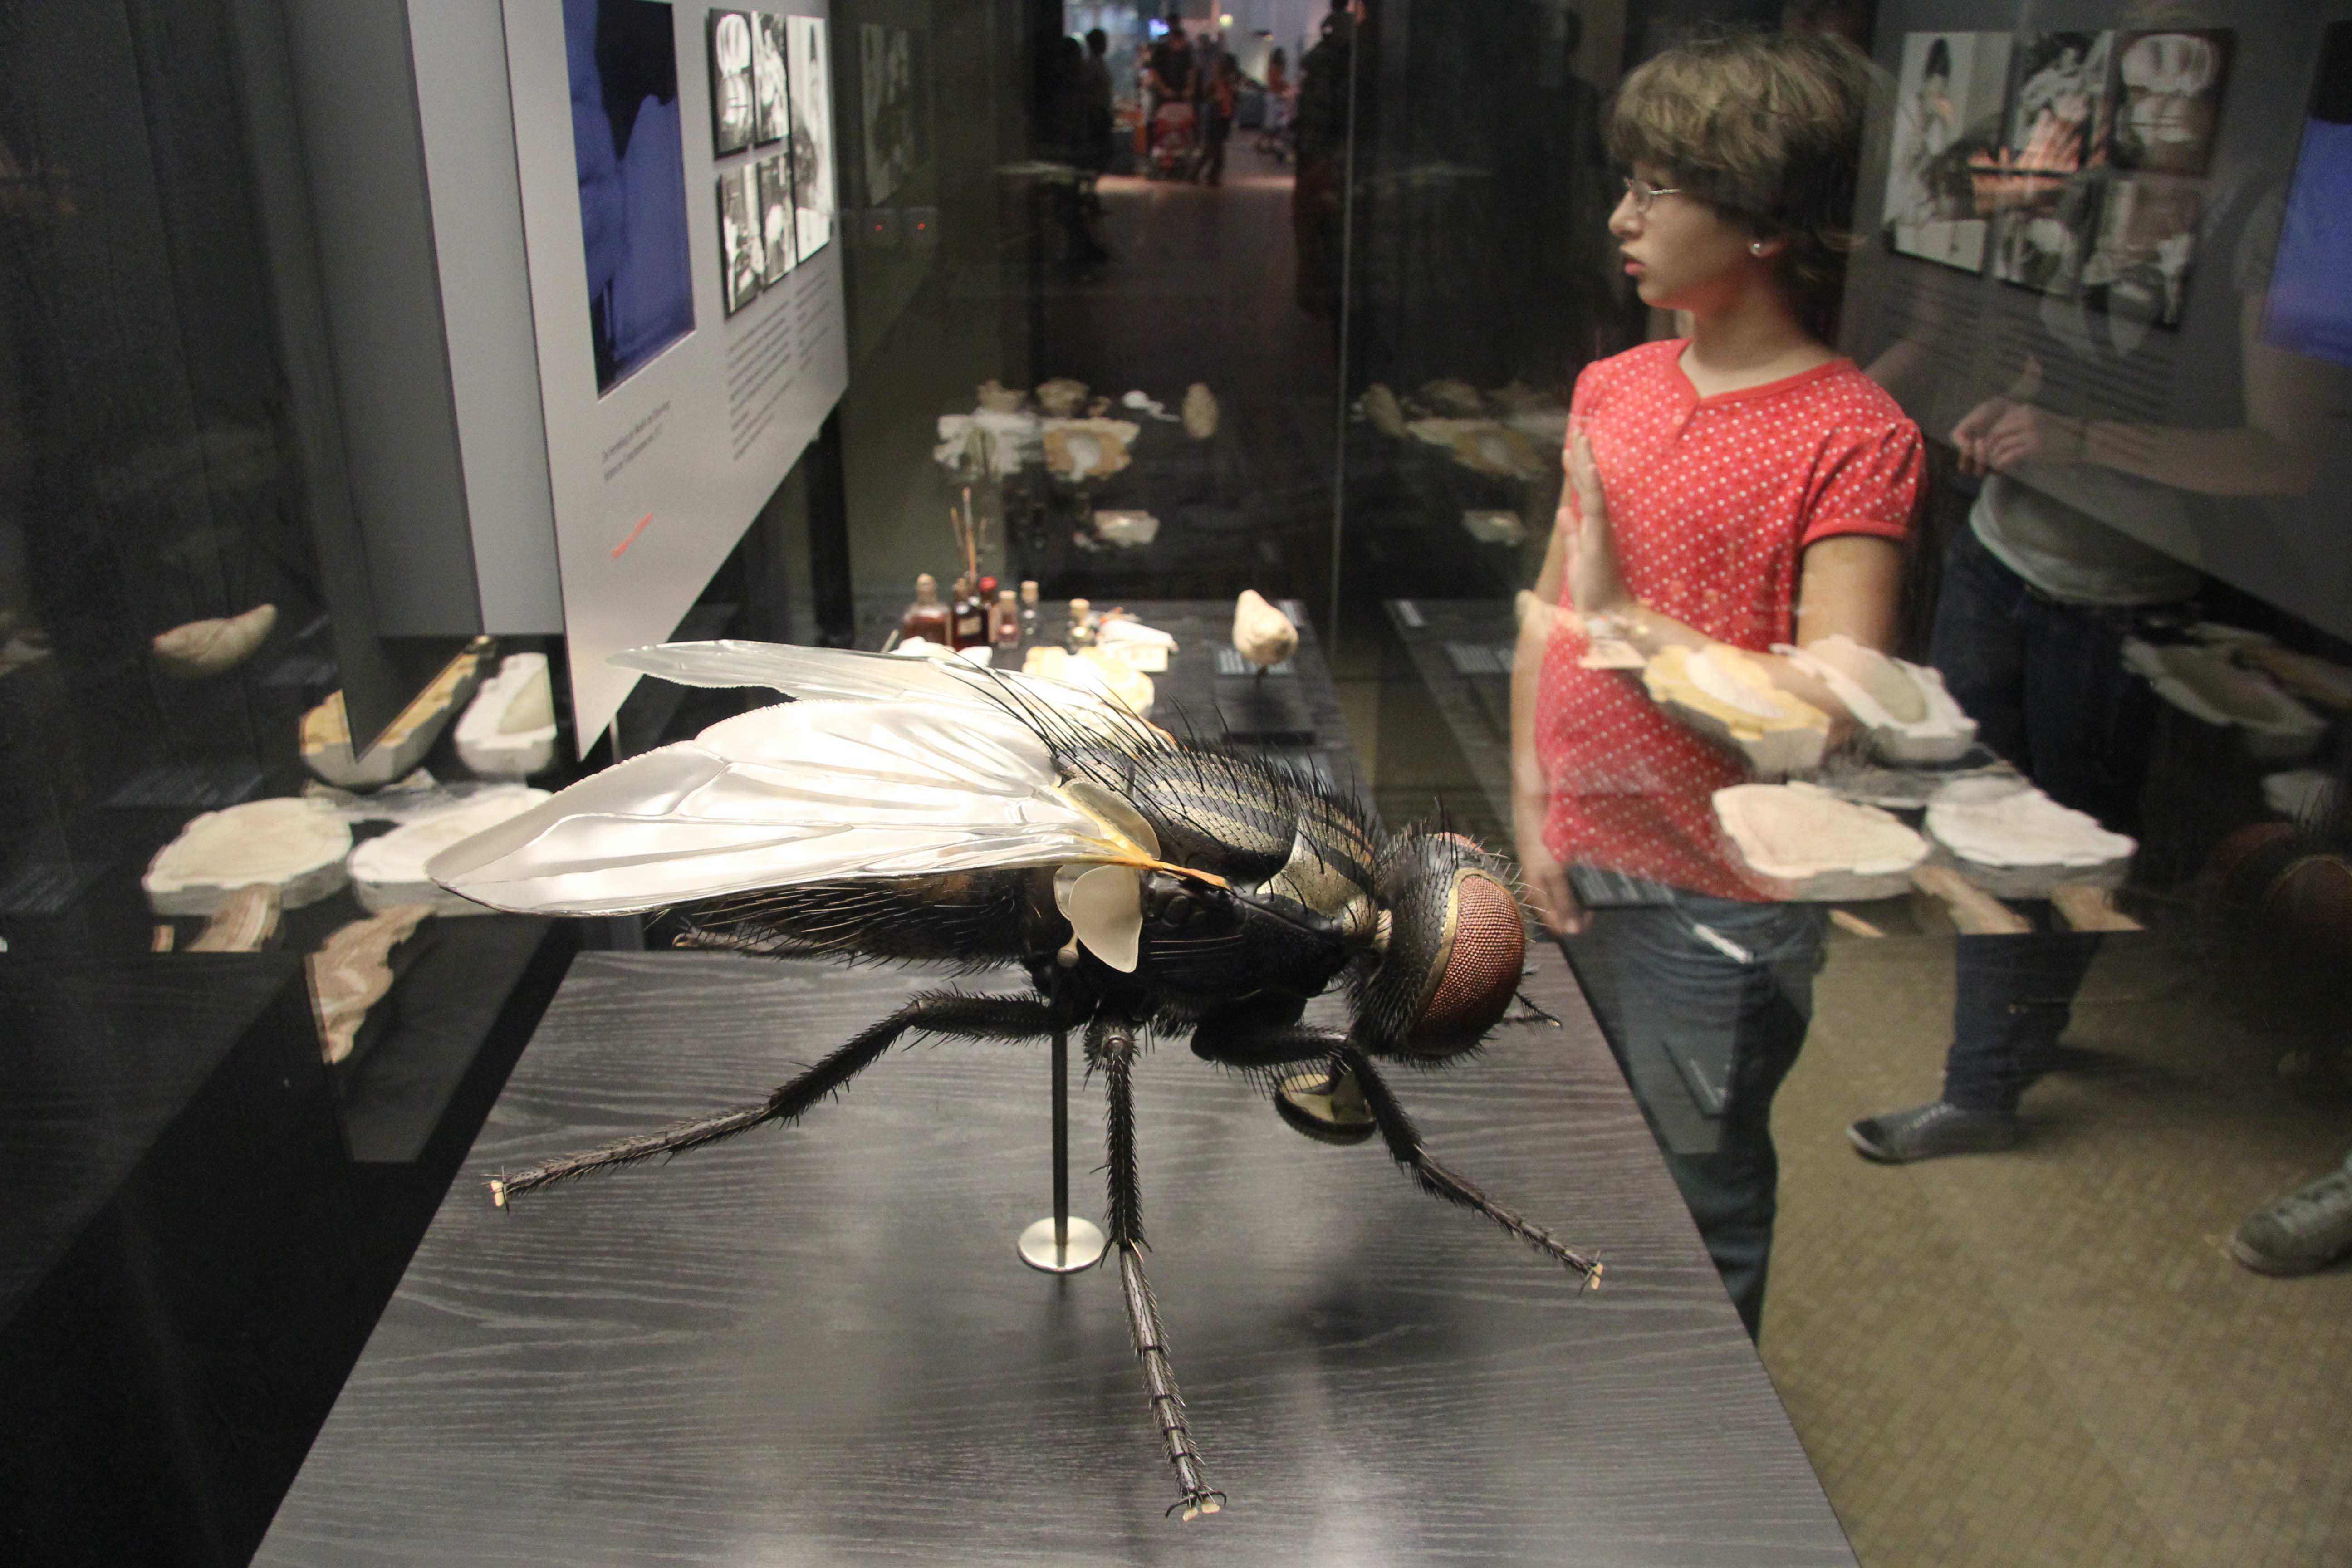 A model of a fly in the Keller's Models exhibition at the Museum für Naturkunde (Natural History Museum) in Berlin